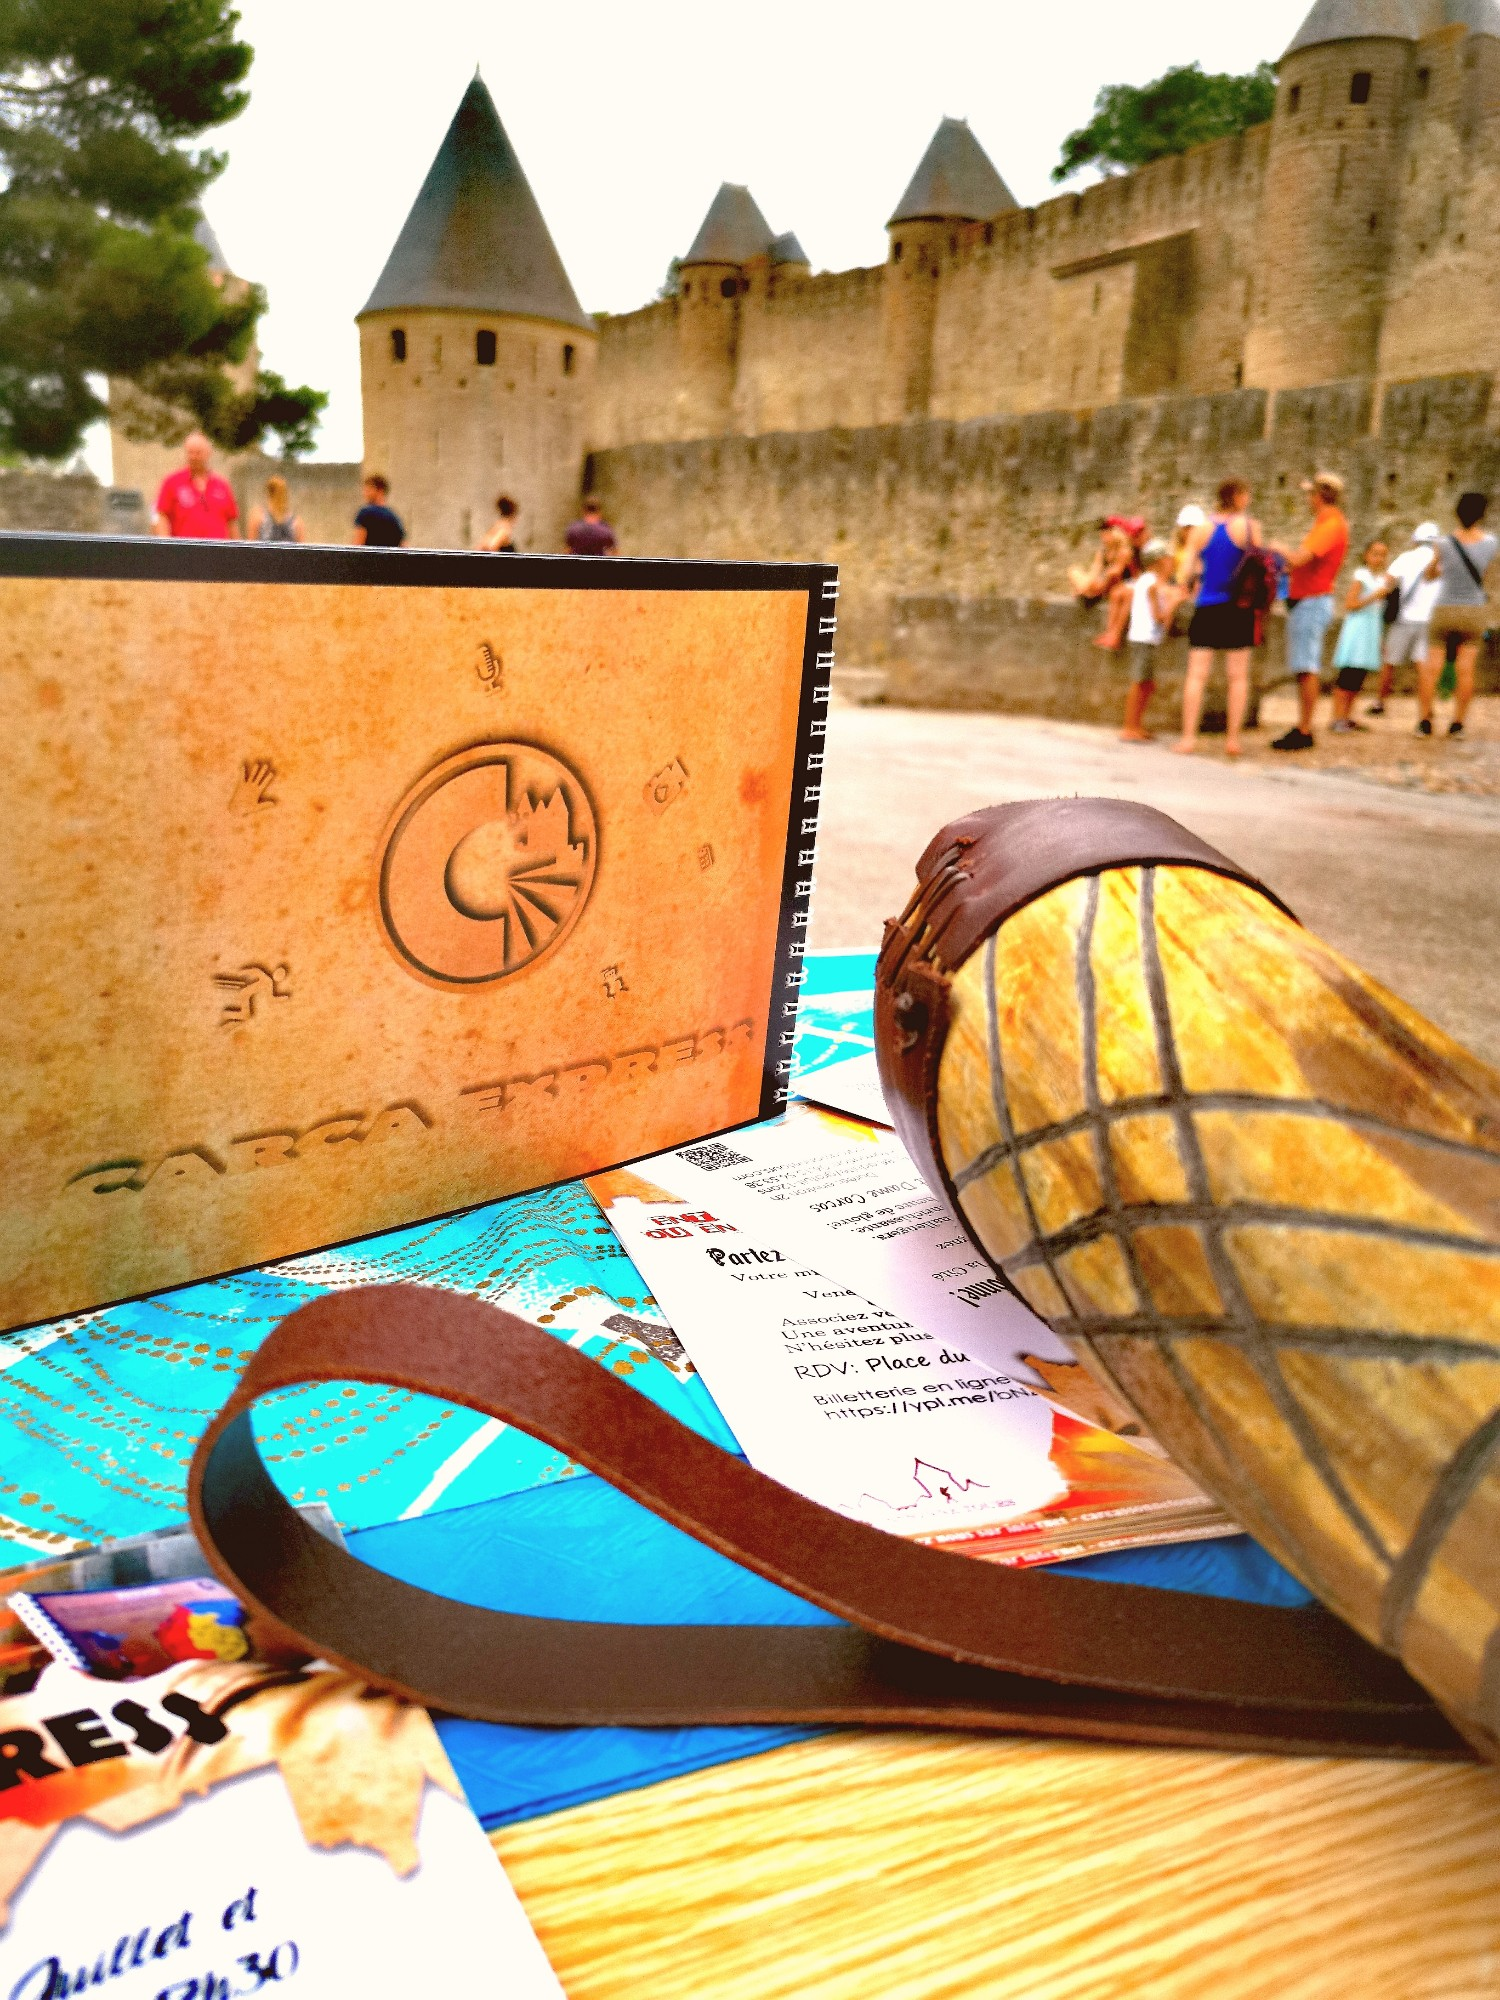 carca express notebook in front of the medieval city of Carcassonne